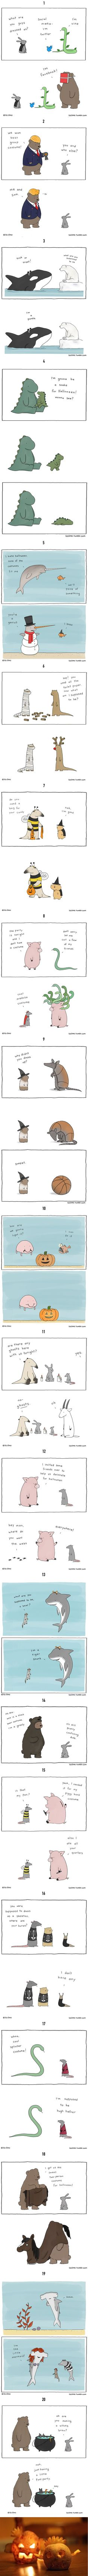 Simpsons Illustrator Elizabeth (Liz) Climo Shows What Would Happen If Animals Celebrated Halloween